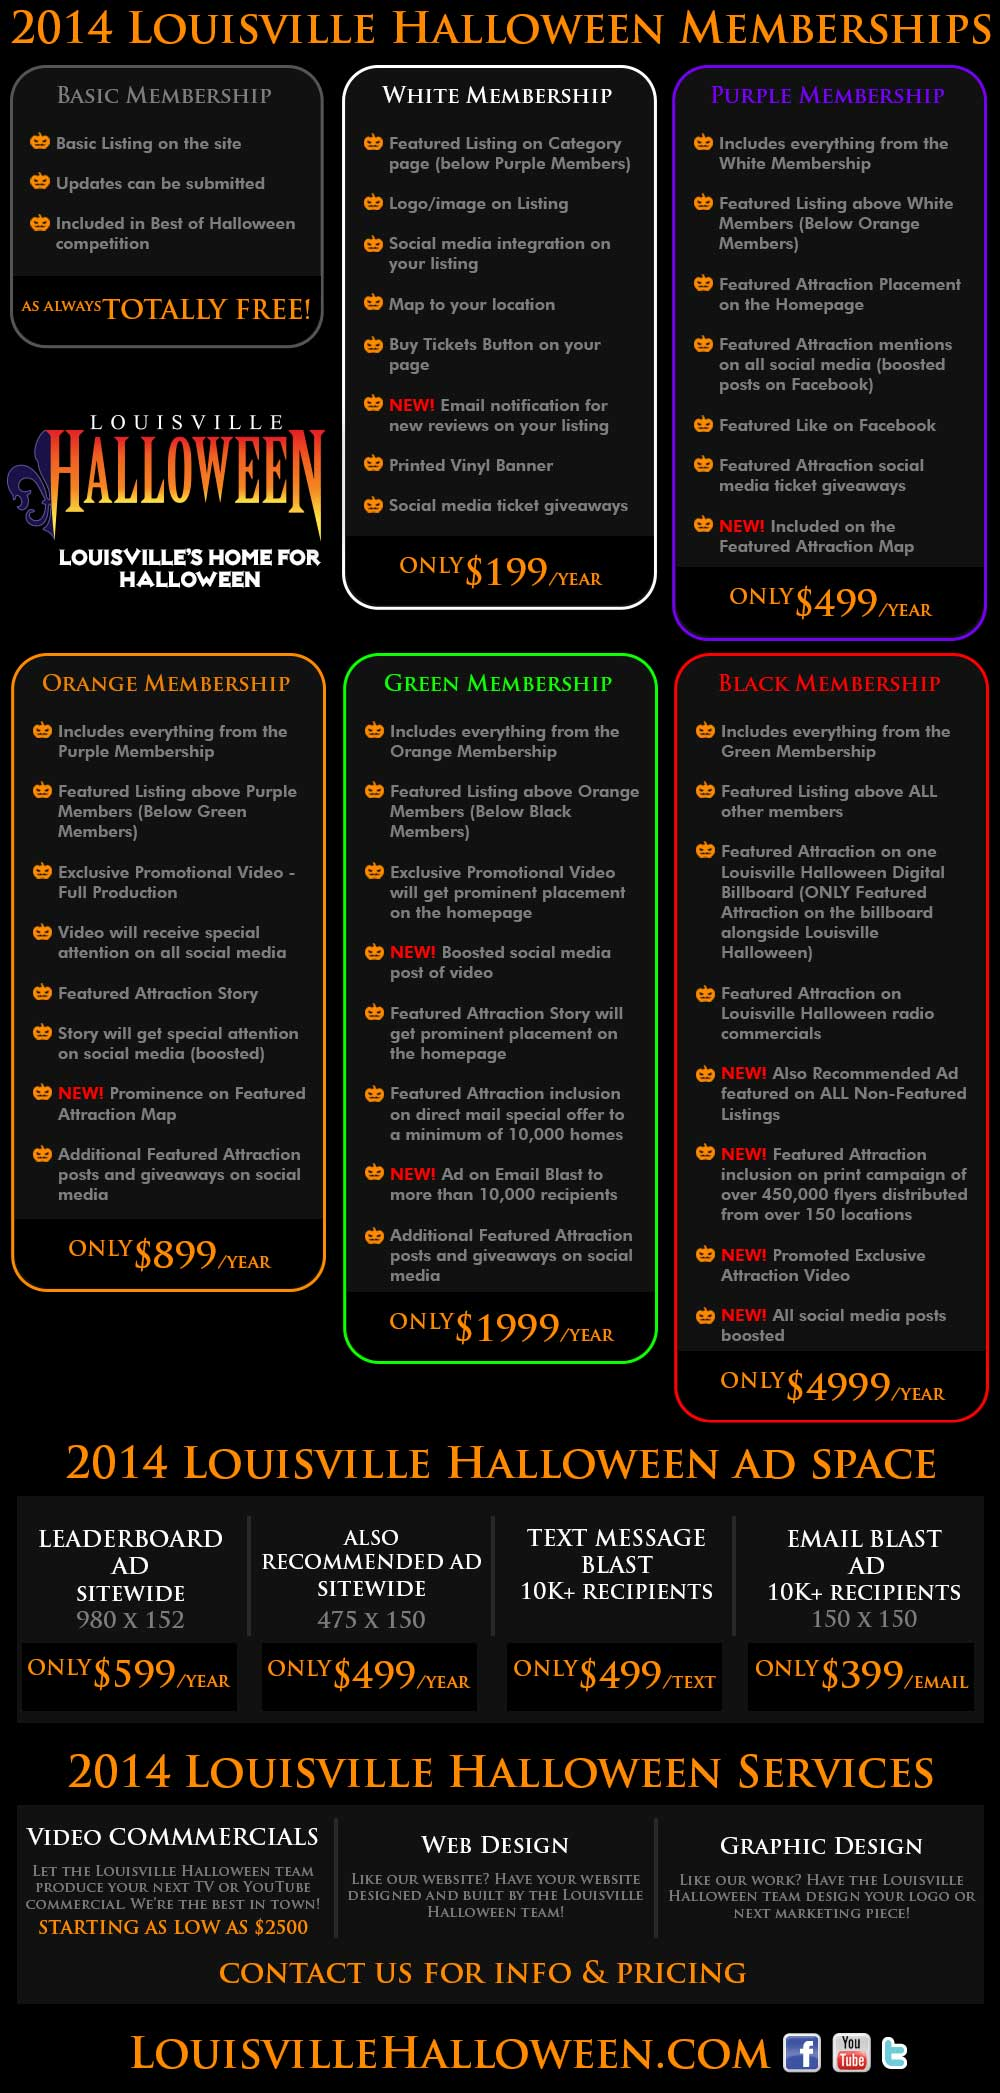 2014 Louisville Halloween Advertising Options